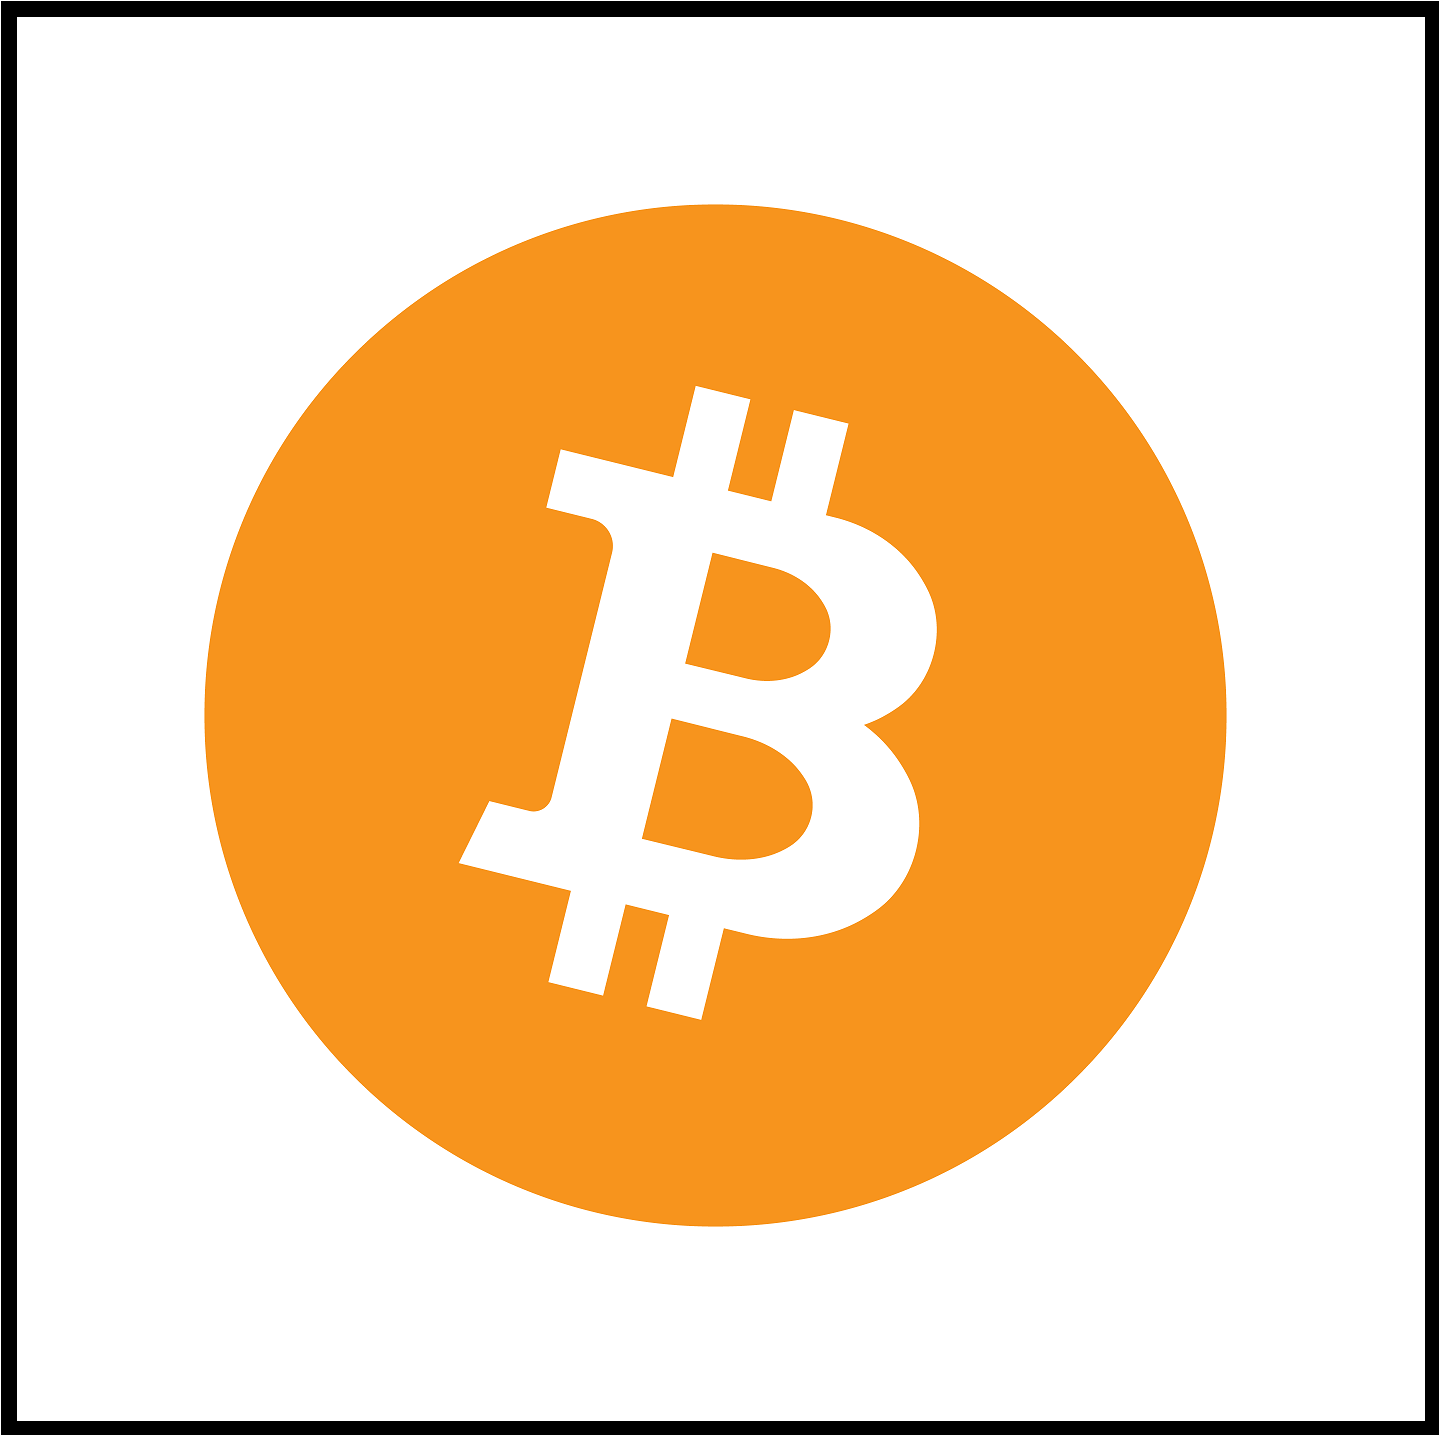 Cryptocurrency consultation Bitcoin BTC